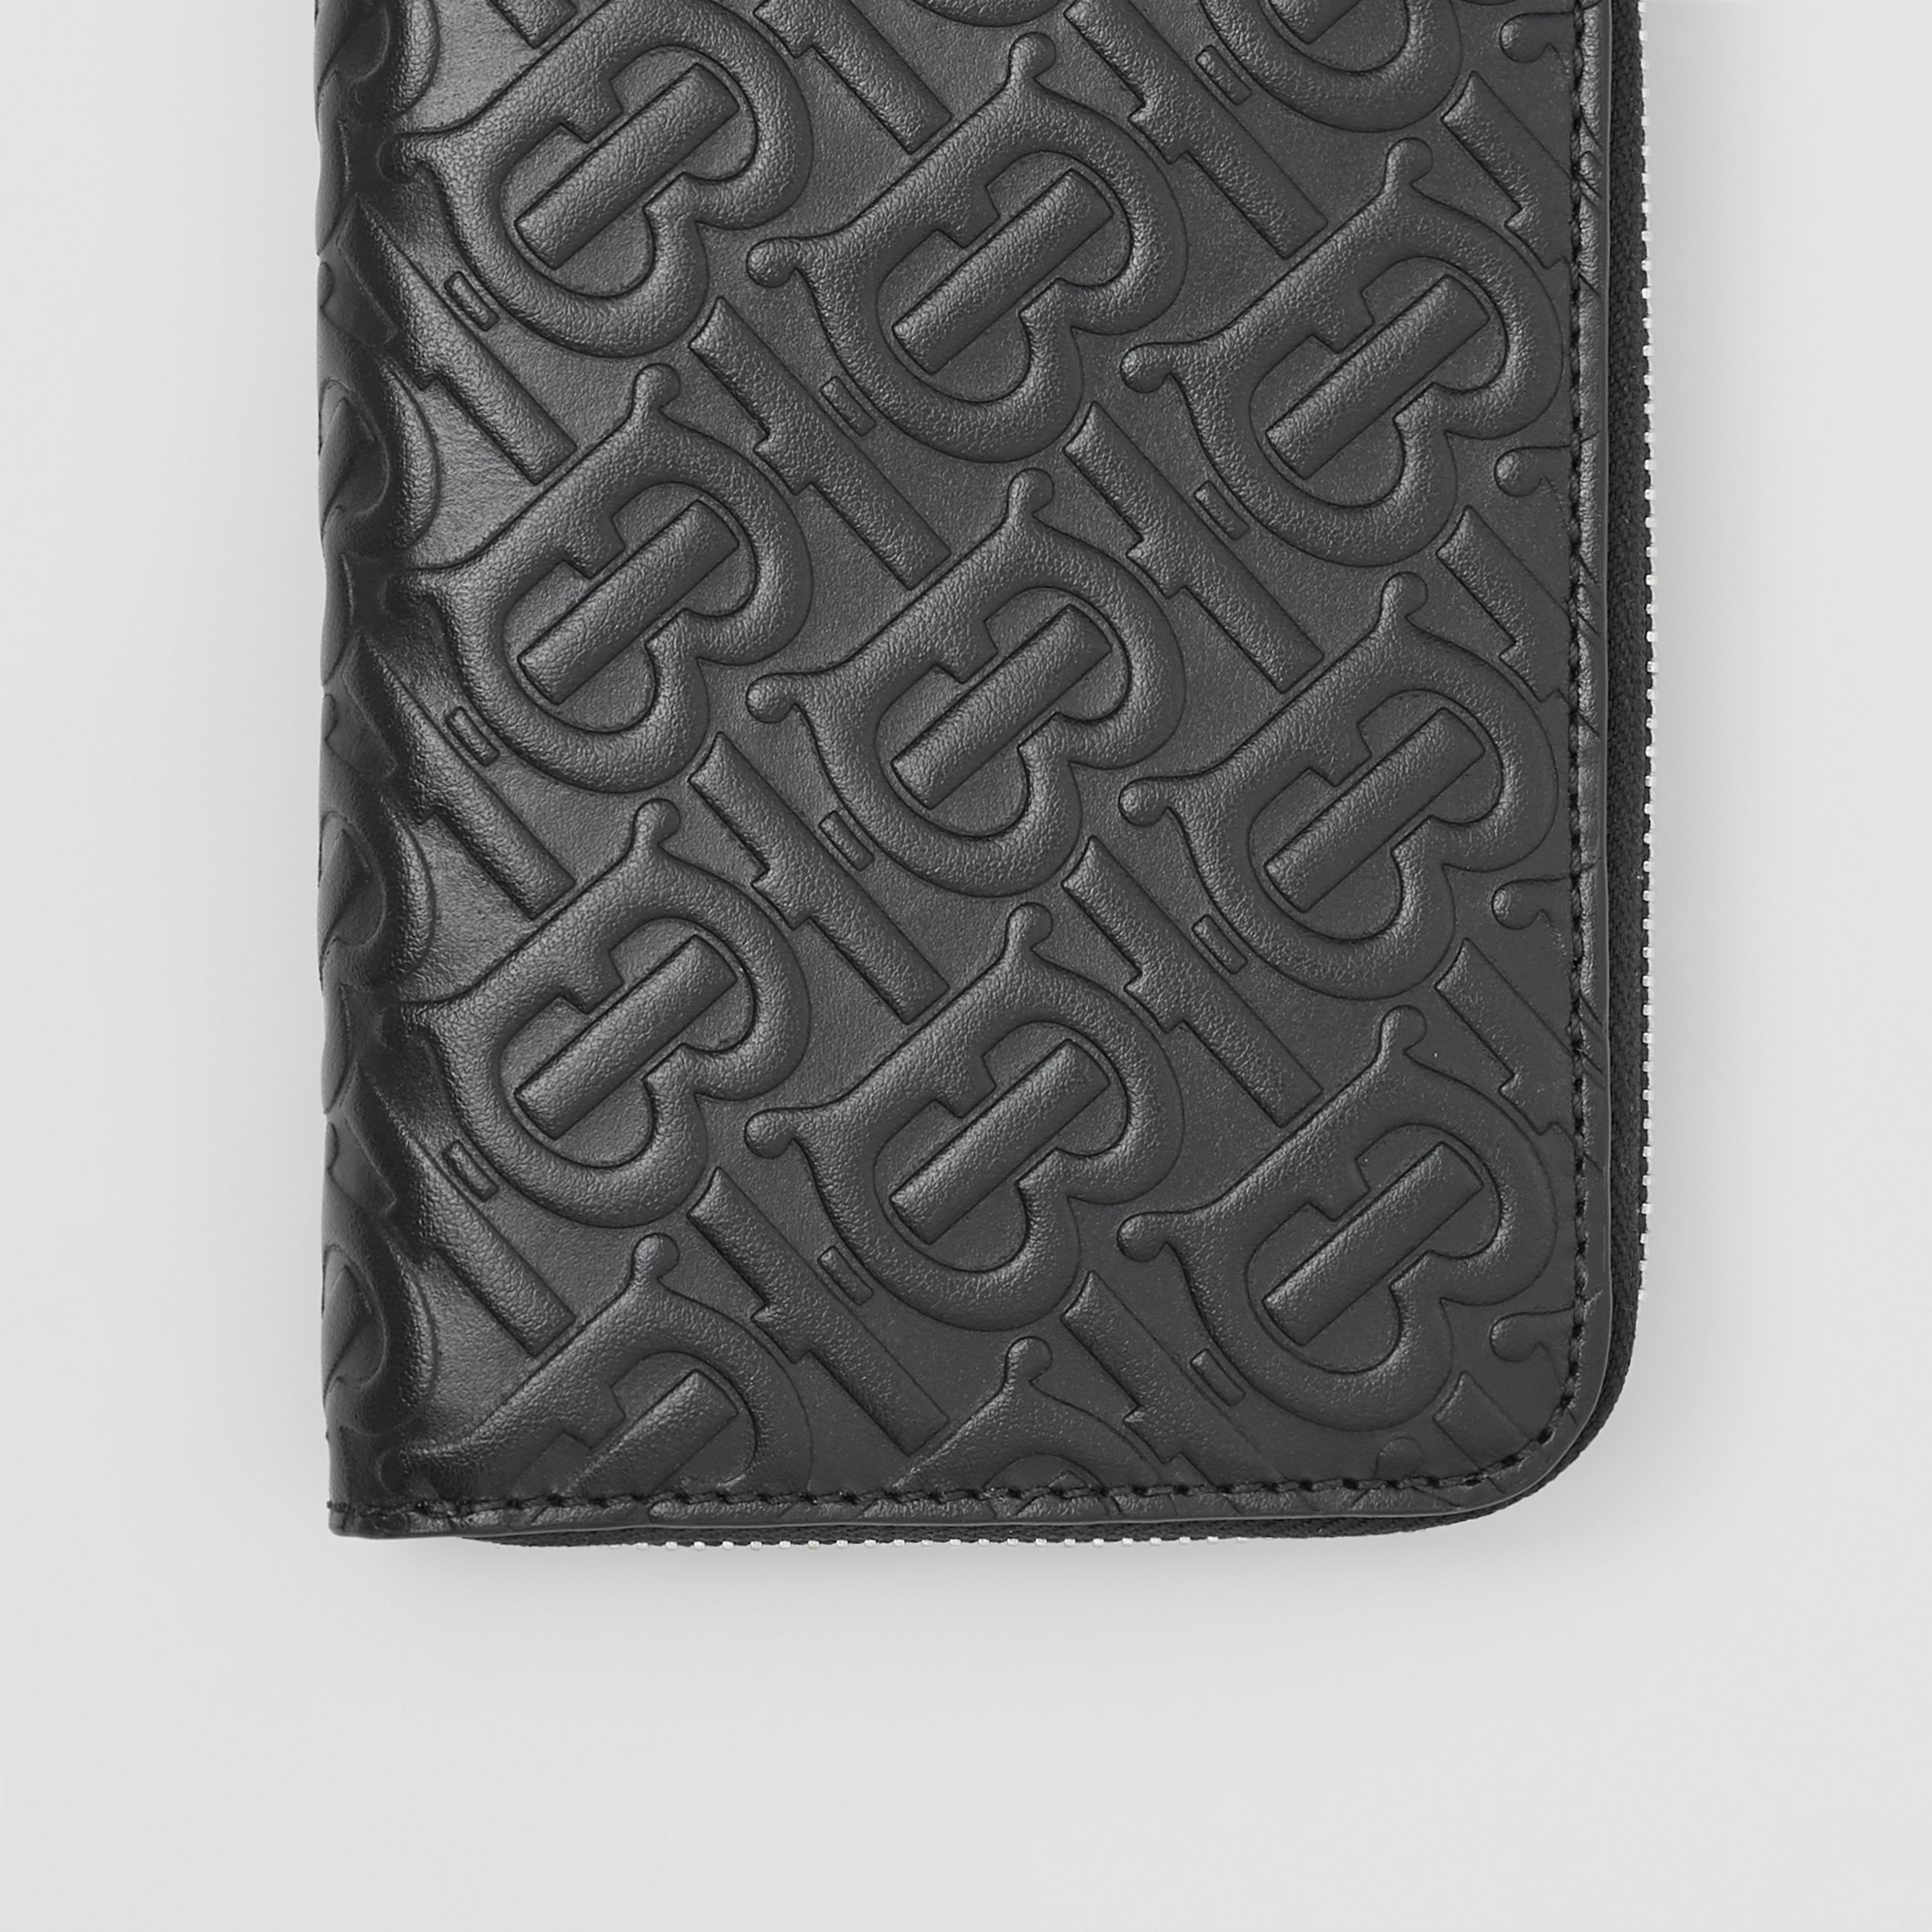 Monogram Leather Ziparound Wallet in Black - Men | Burberry Hong Kong S.A.R. - 2